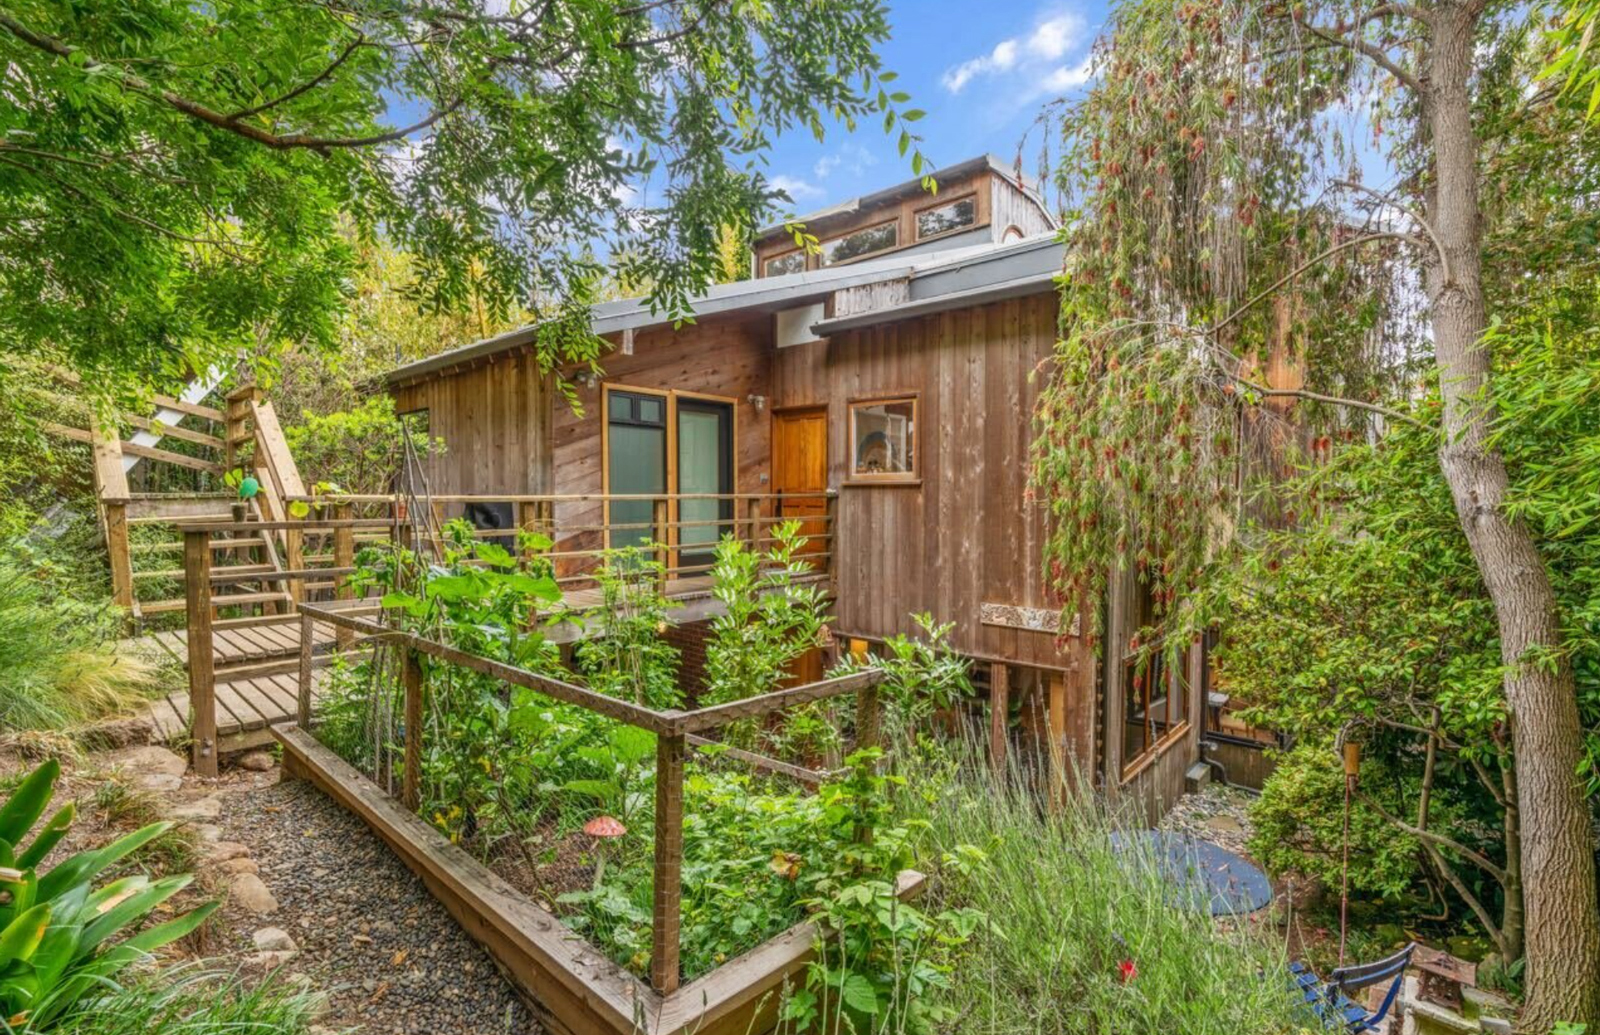 Originally known as the Kane Residence, the property has a treehouse appearance